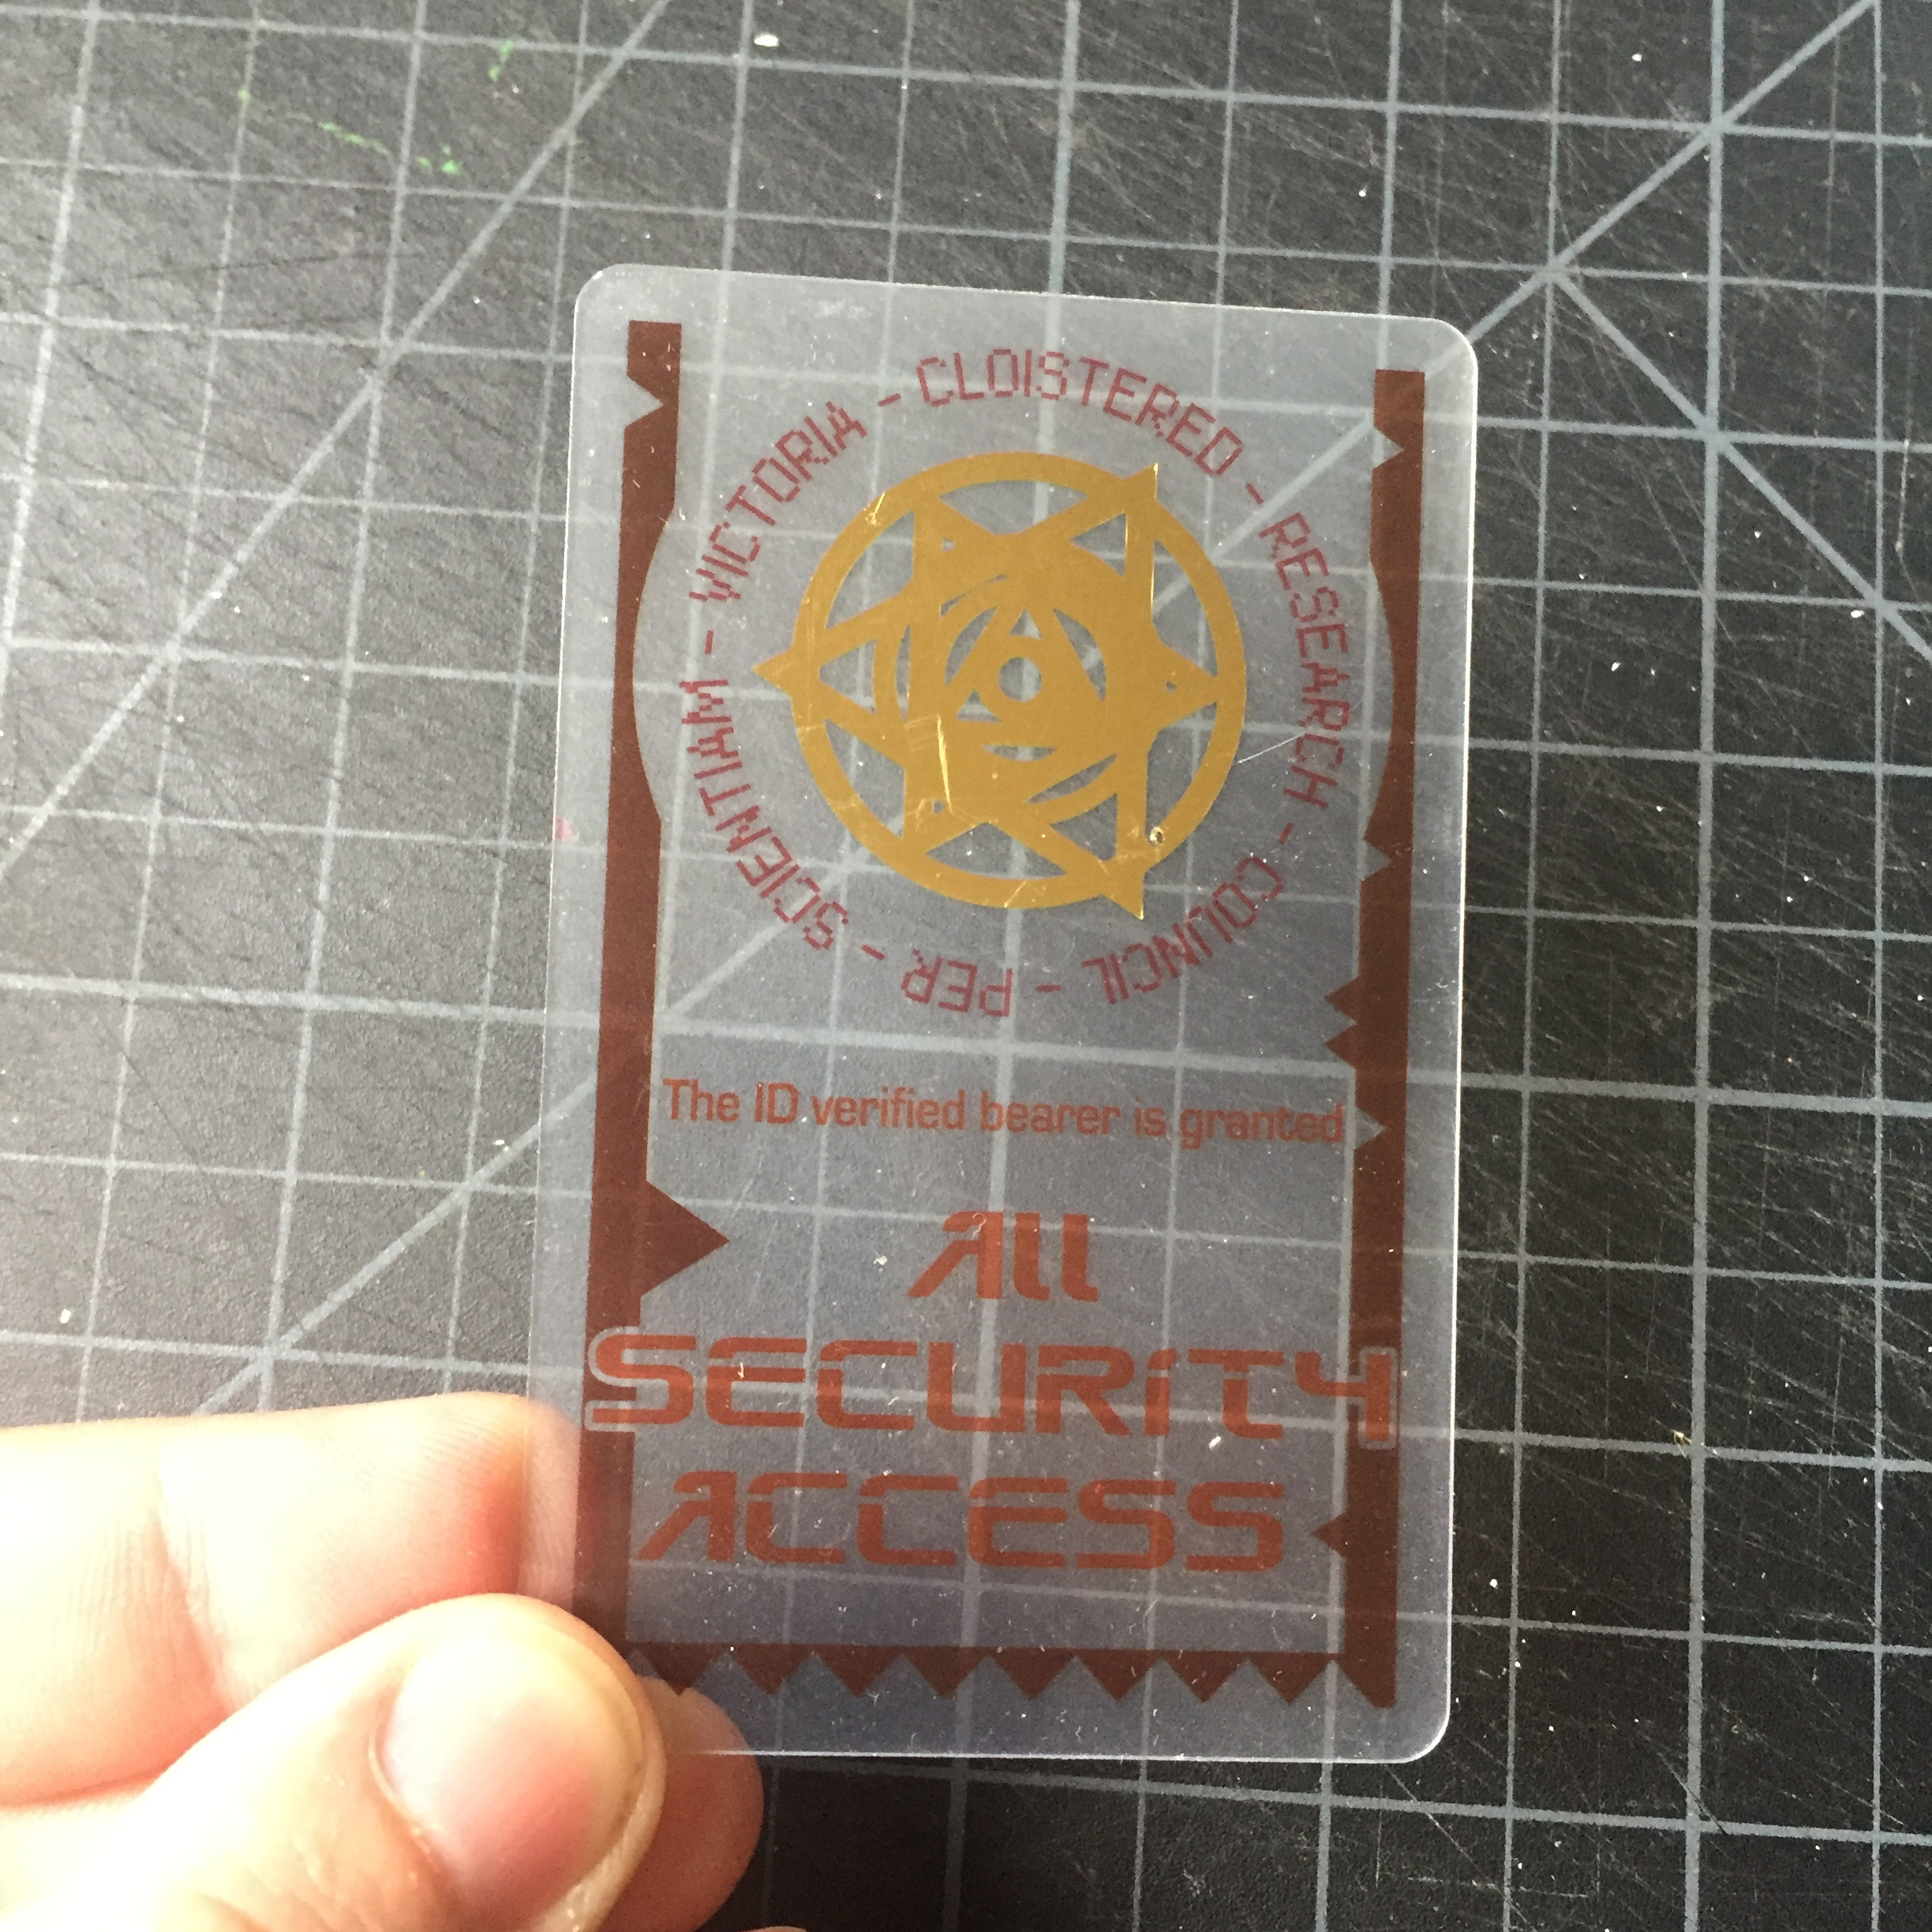 C.H.O.I.R Access Card - A translucent ID card I designed for my friend Russell Collin's game Tears of a Machine